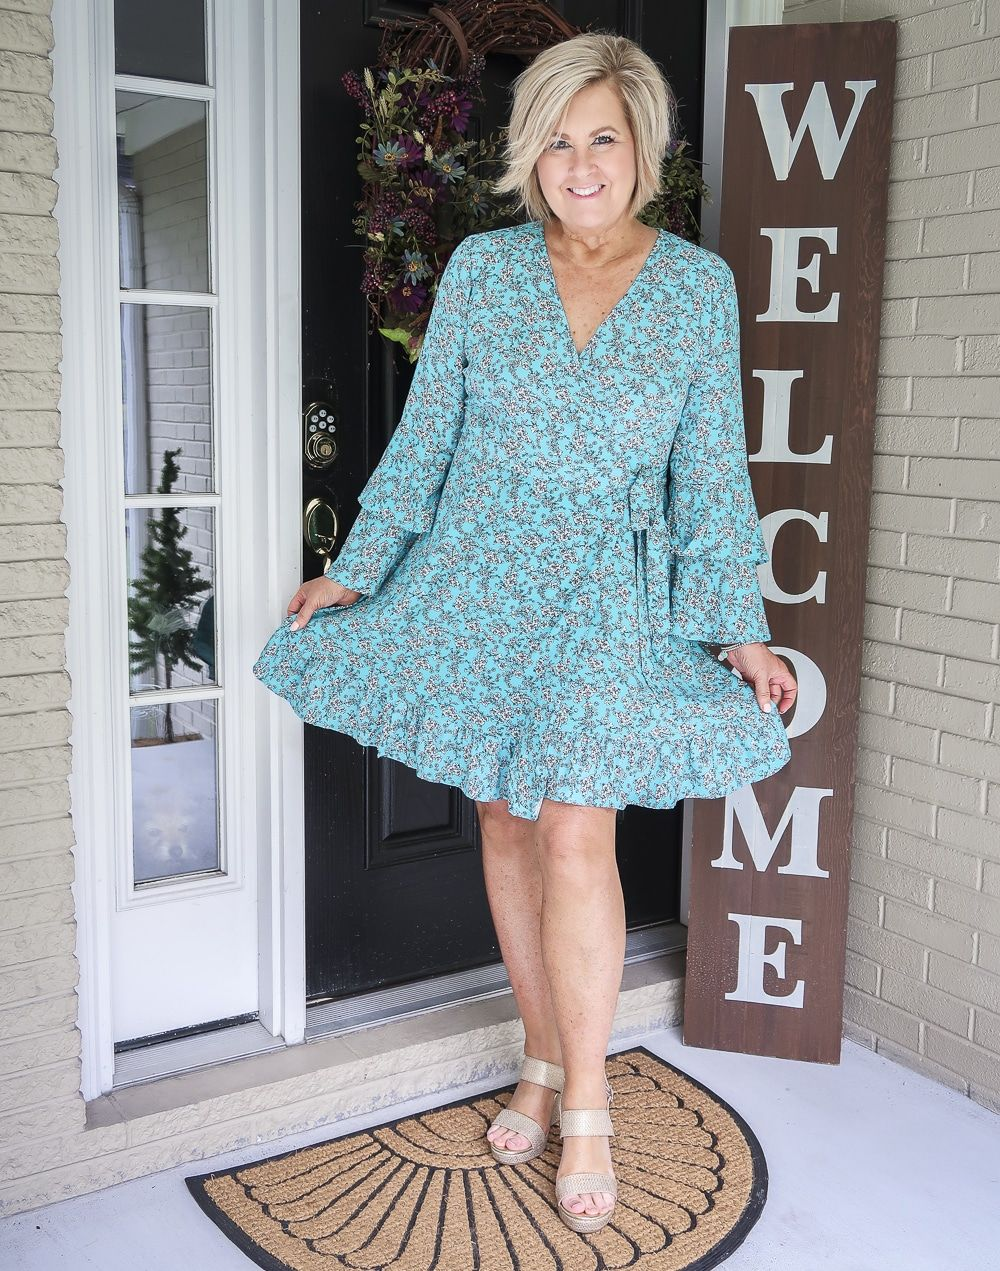 Summer Dresses That Are Beautiful And Affordable 50 Is Not Old Fashion Fashion Over Fashion Over 50 [ 1271 x 1000 Pixel ]